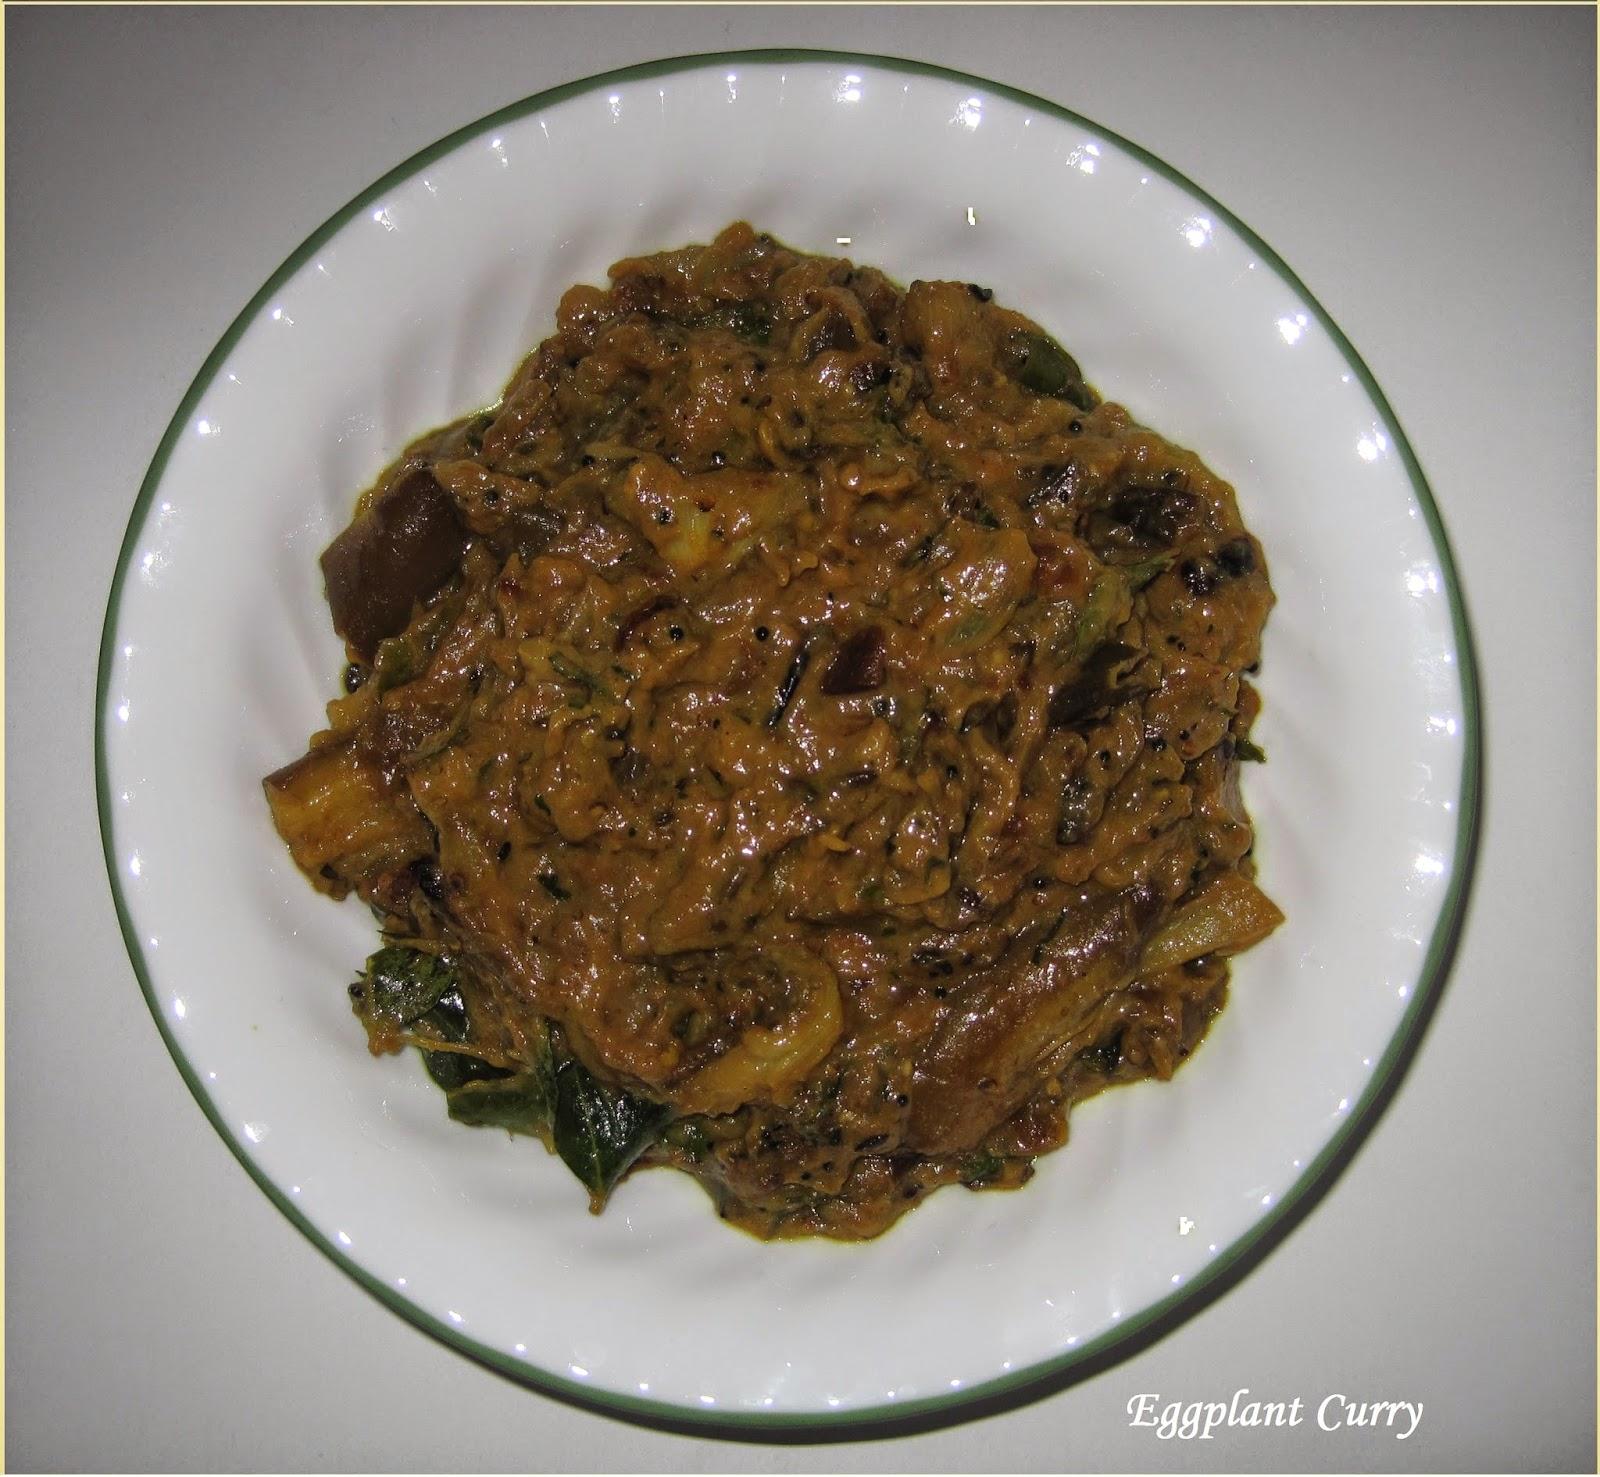 Ajantha's Food/Eggplant Curry